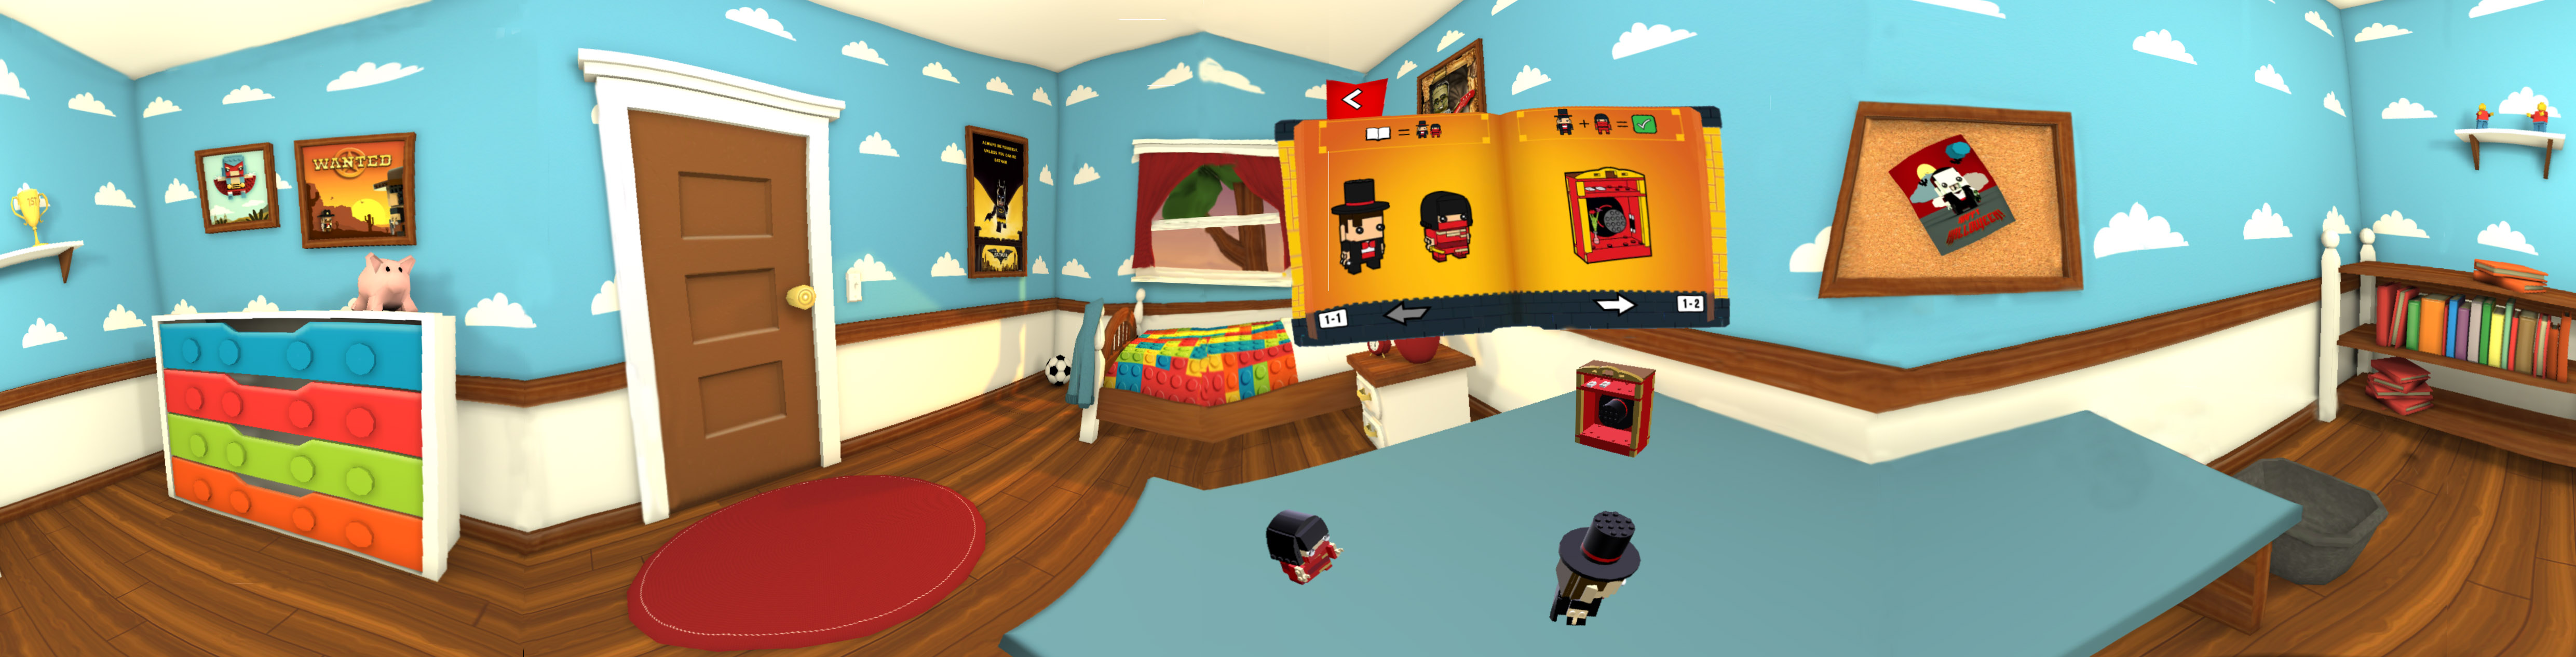 Lego Brick 'H'EADZ 360 degree room